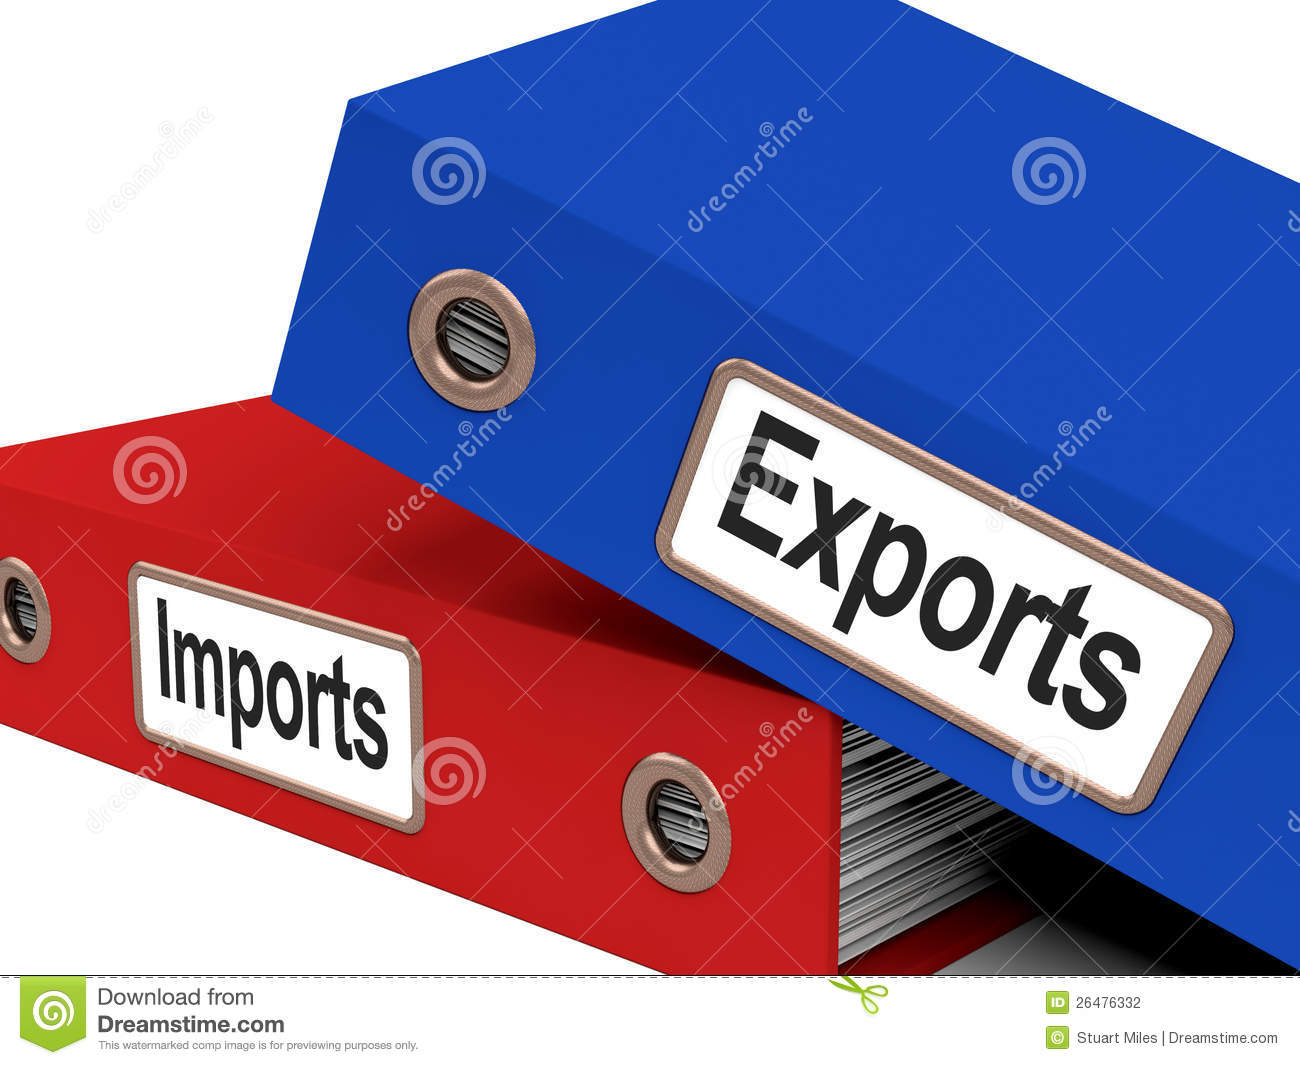 Imports clipart clip art royalty free Imports Clipart Export and | Clipart Panda - Free Clipart Images clip art royalty free